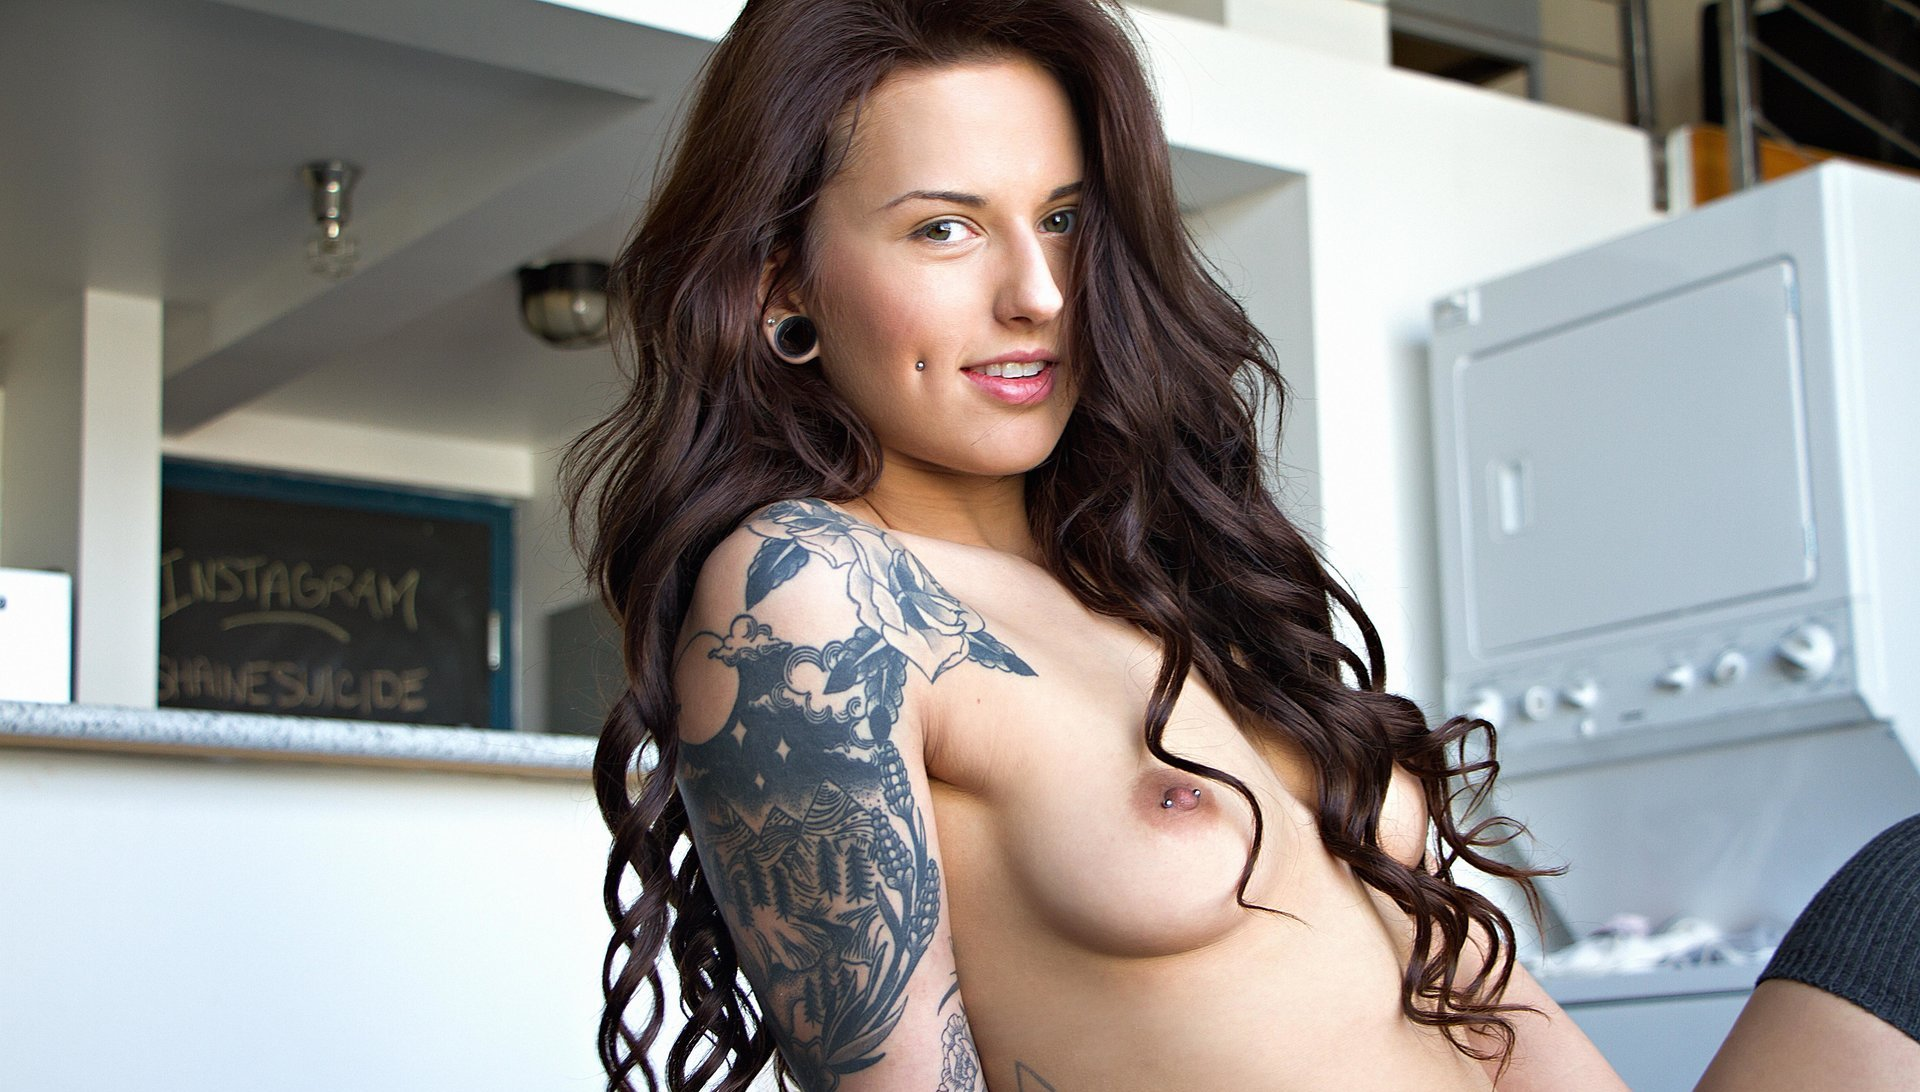 Octavia May Onlyfans Nude Leaks 0030